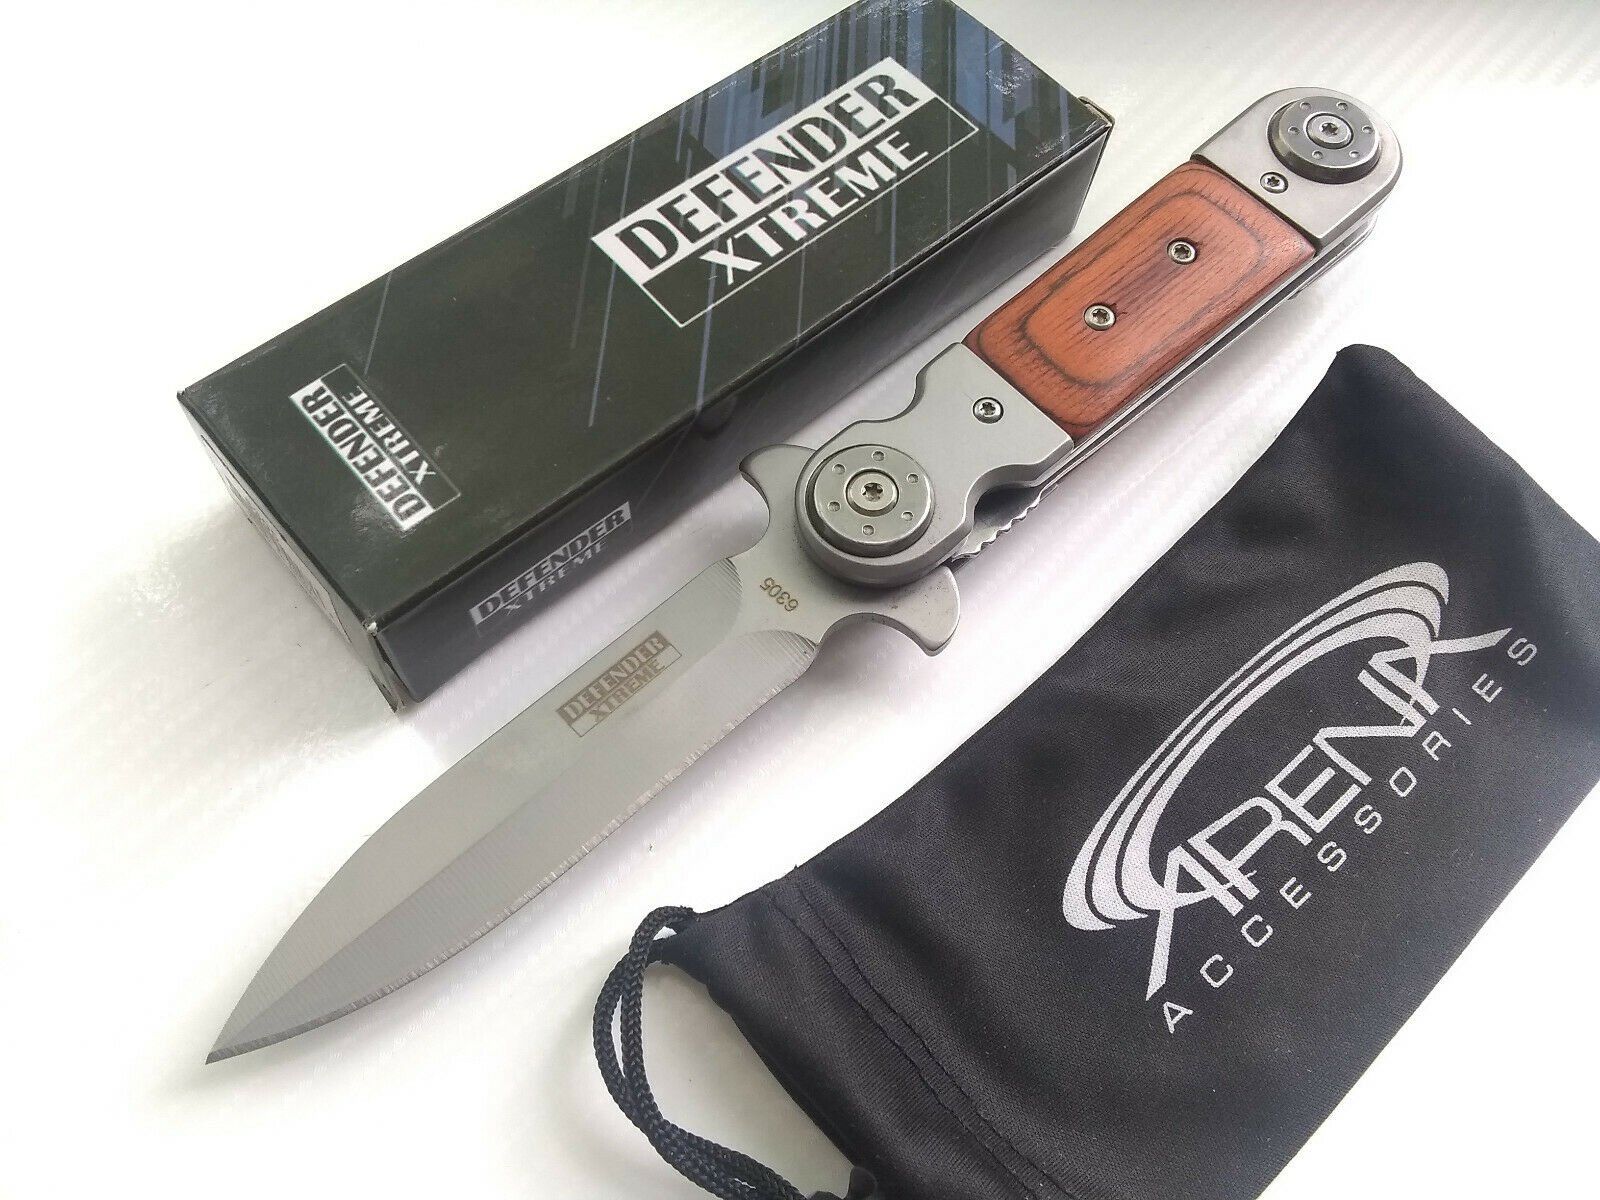 Defender Xtreme Silver Blade Wood Handle Spring Assisted Flipper Hunting Camping Hiking Pocket Knife EDC